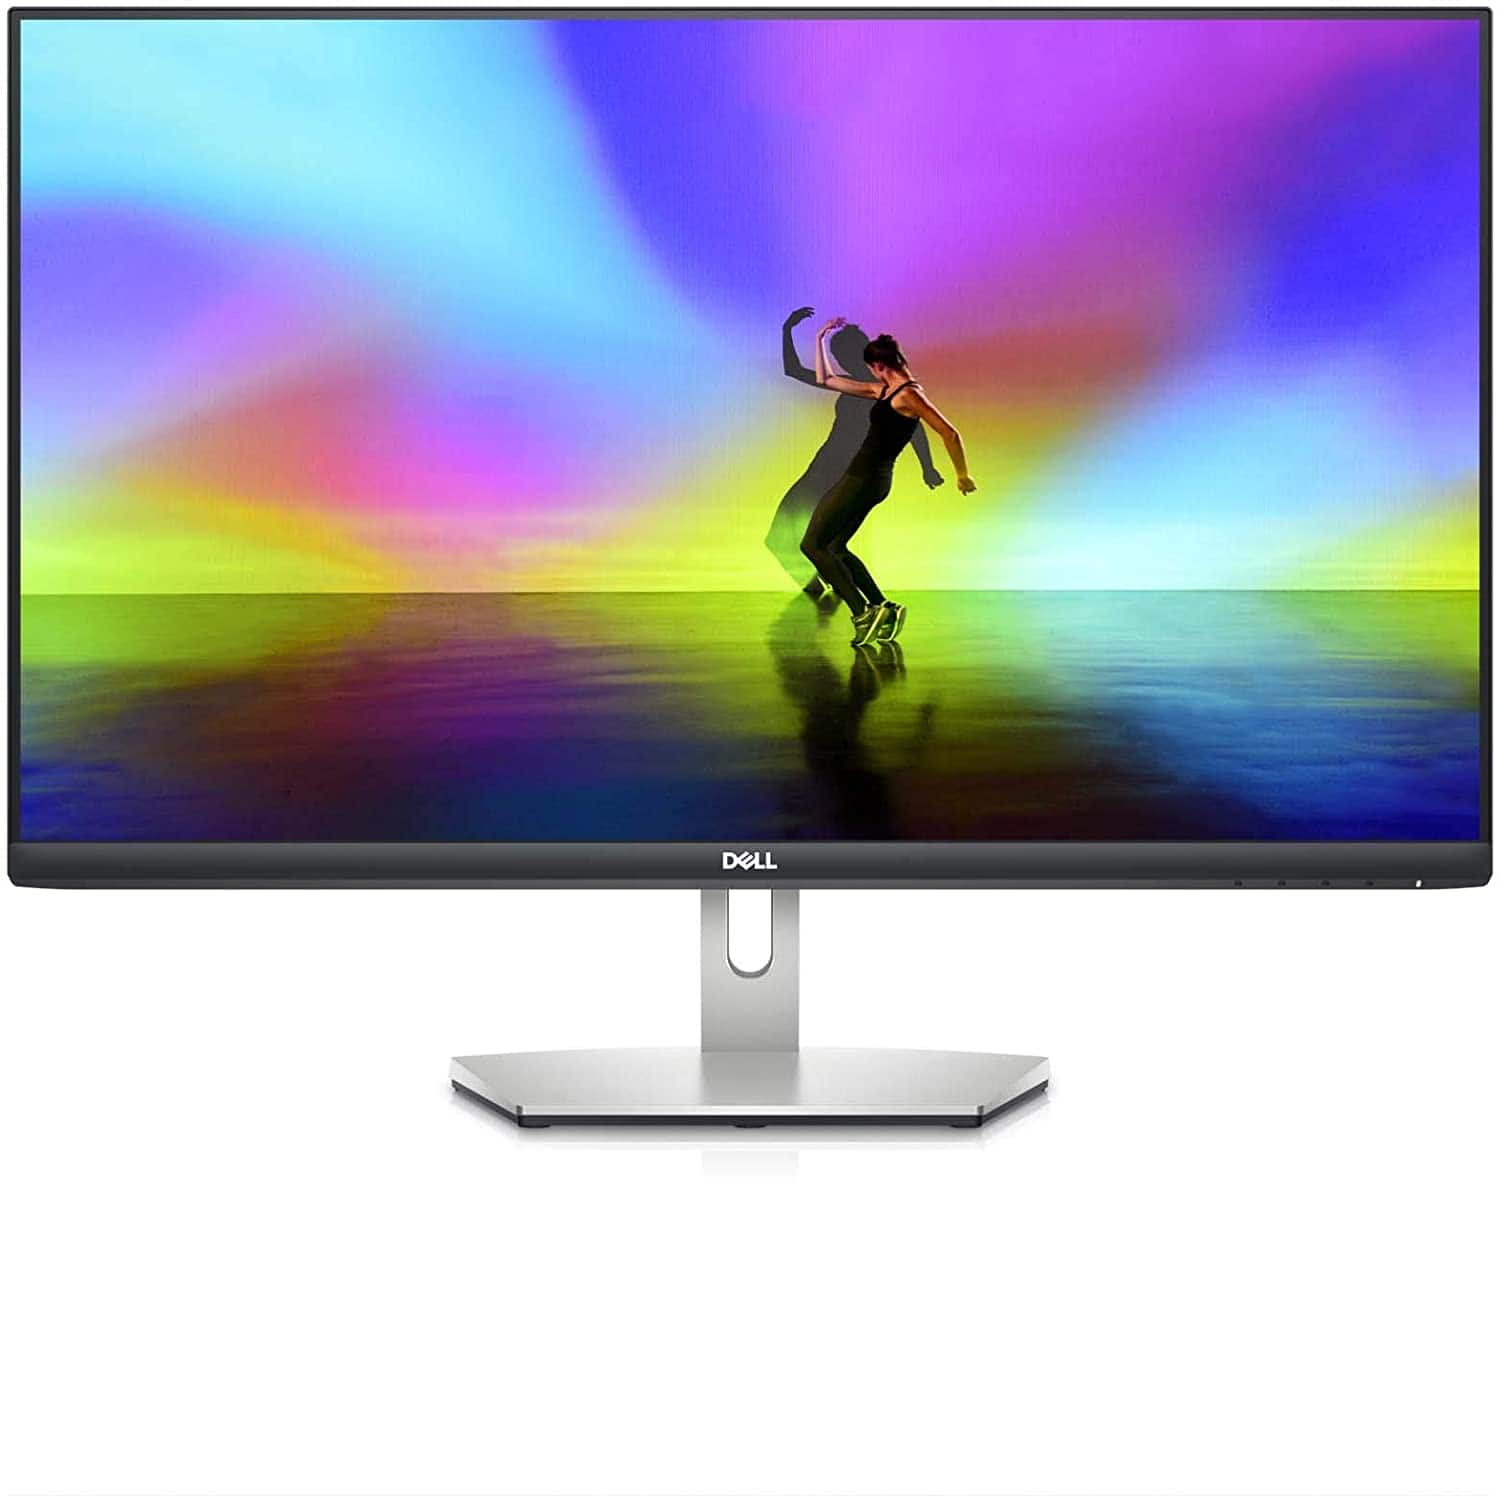 Dell 27 Monitor - S2721H for $159.99